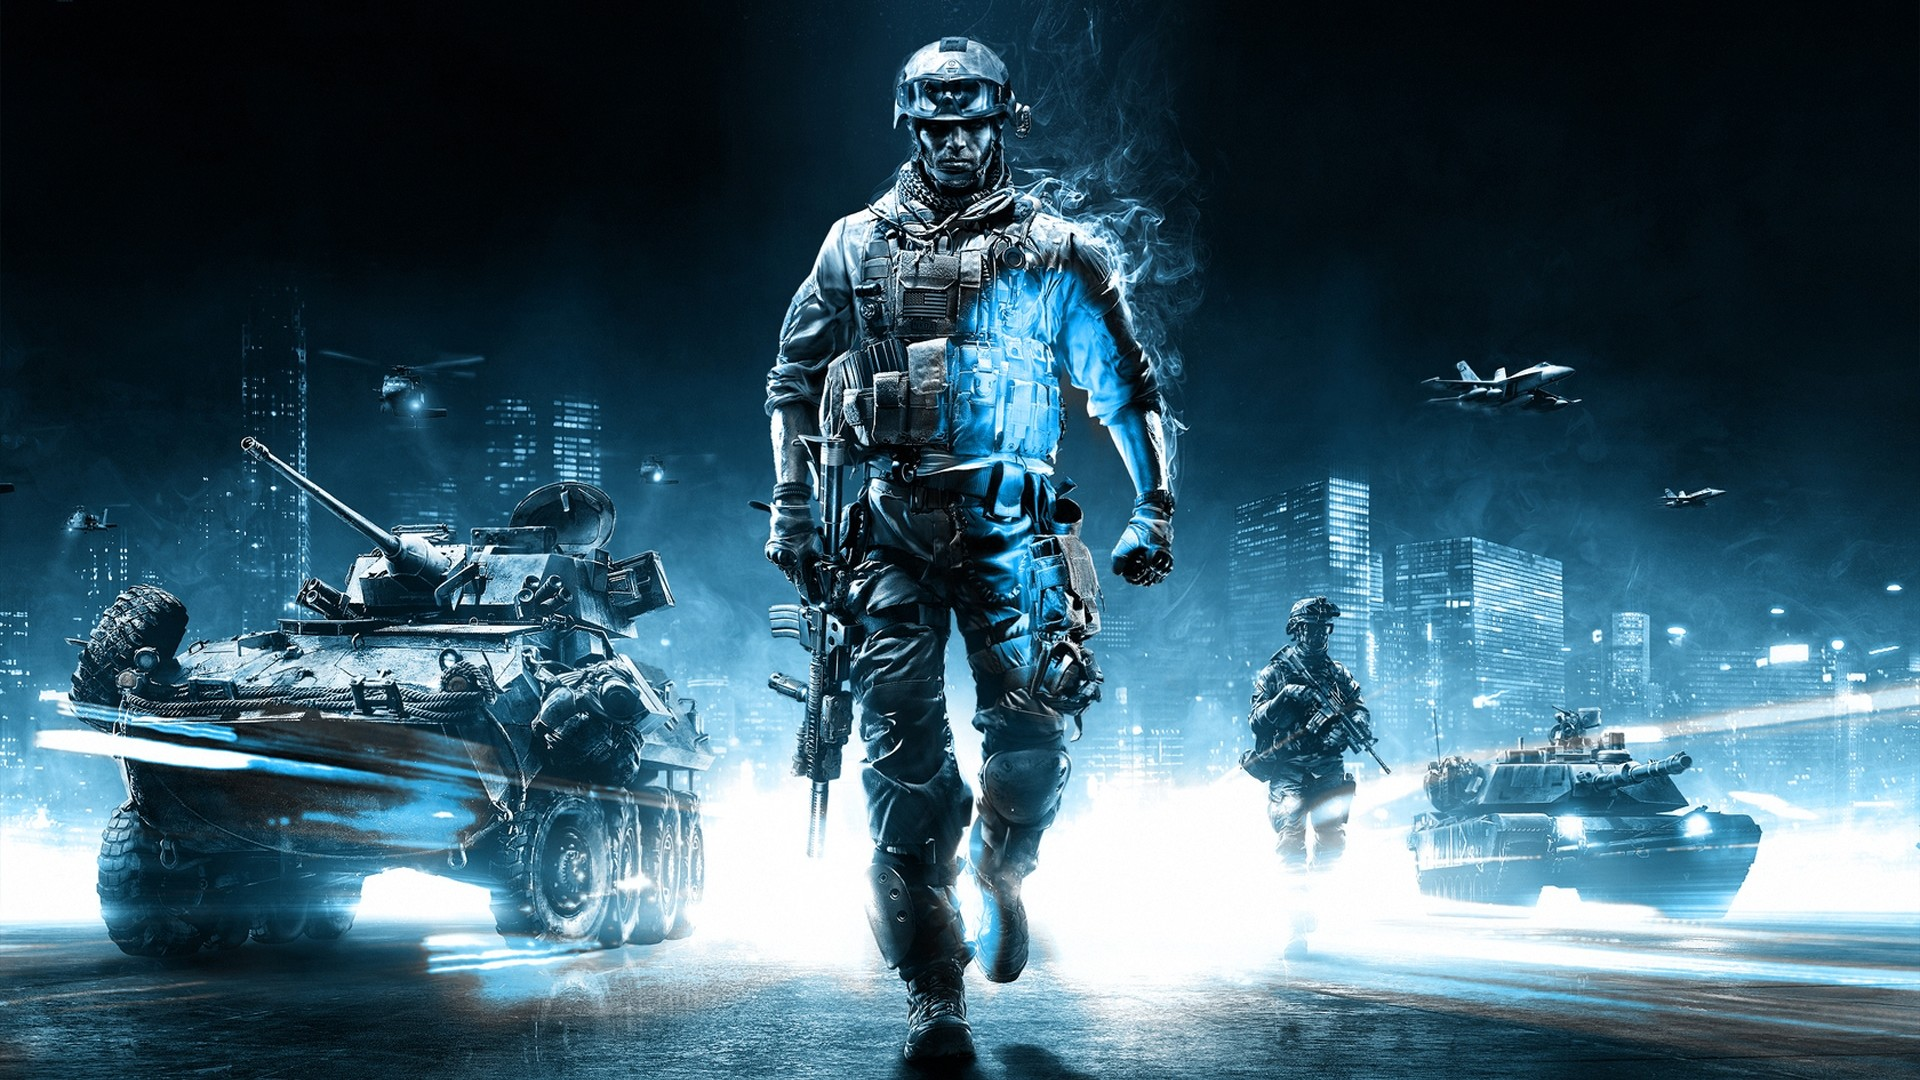 HD Gaming Wallpaper (68+ pictures)